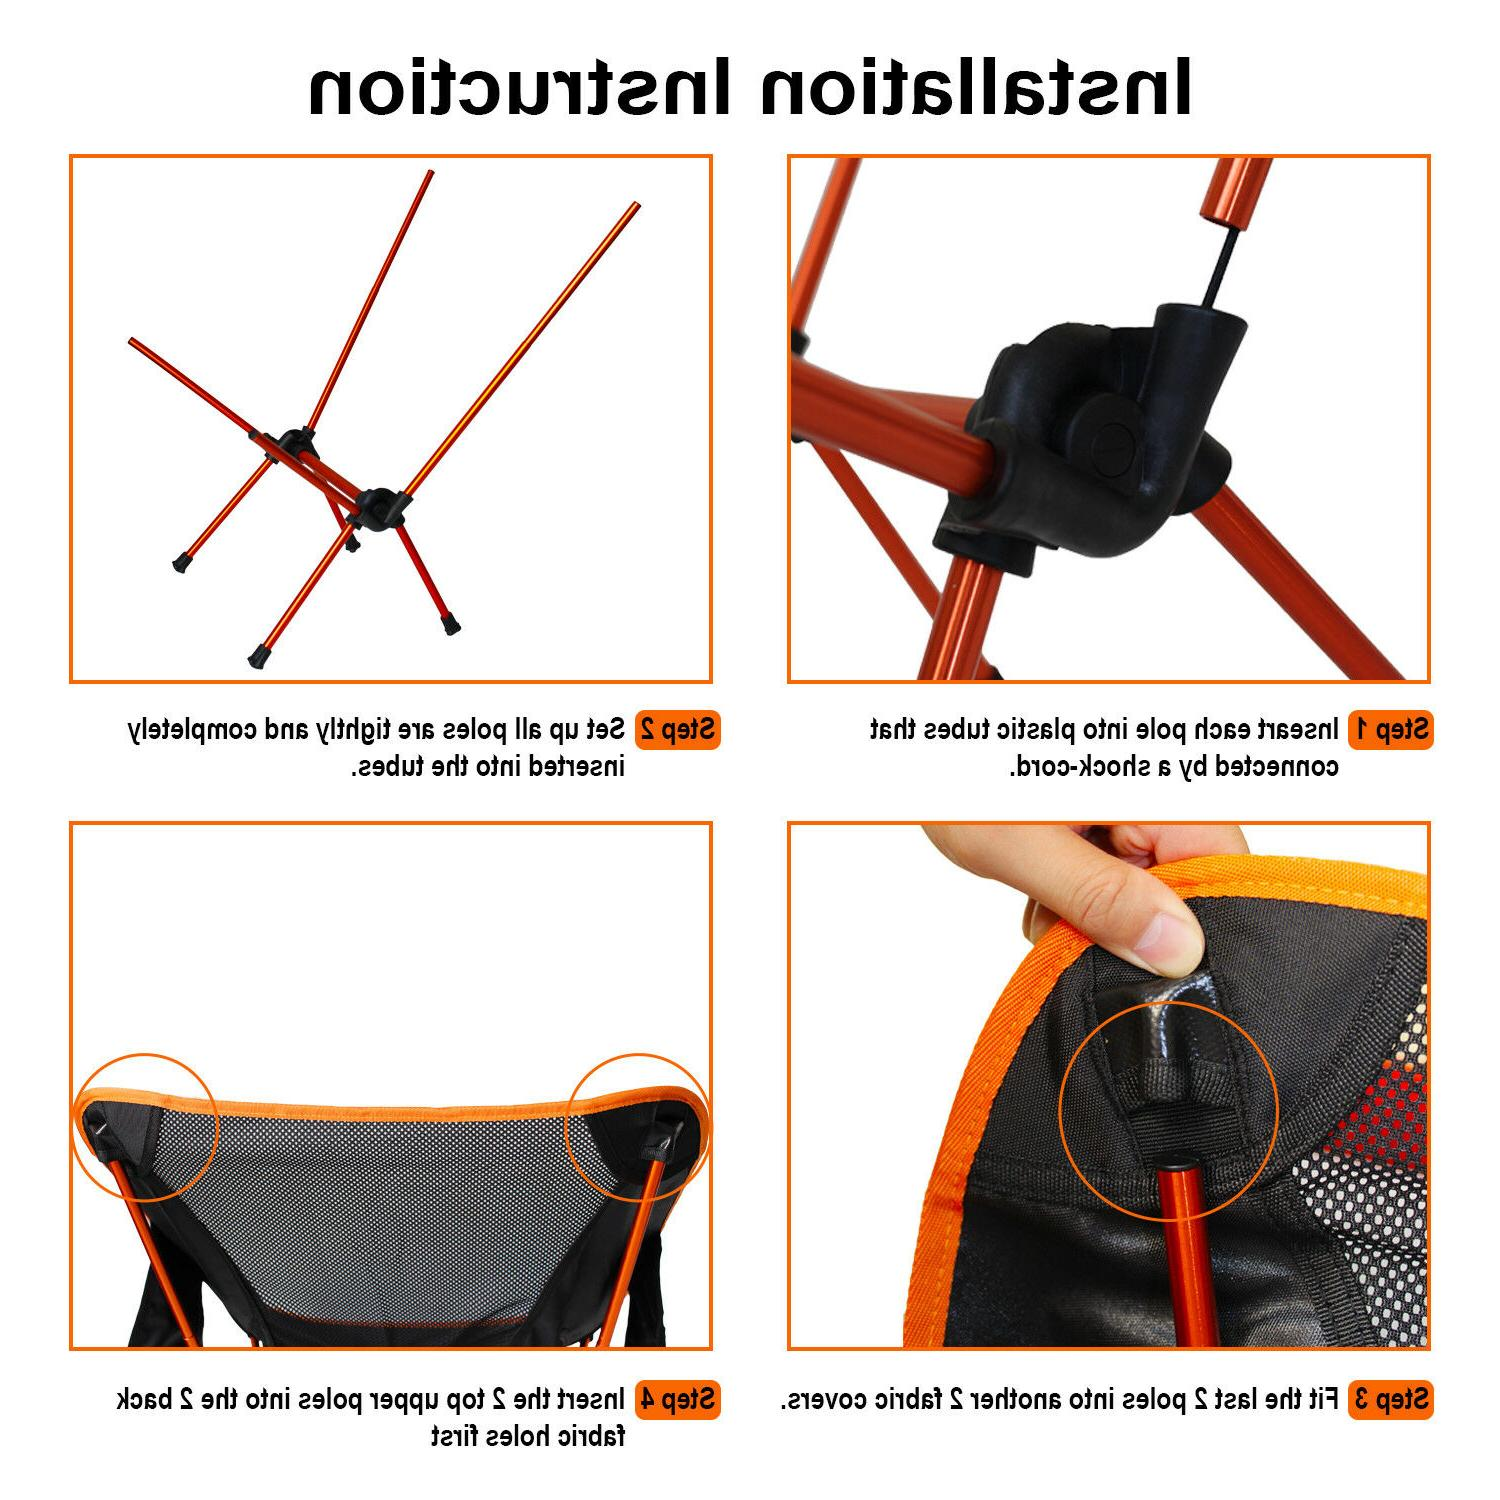 NiceC Portable Backpacking Camping Chair 2